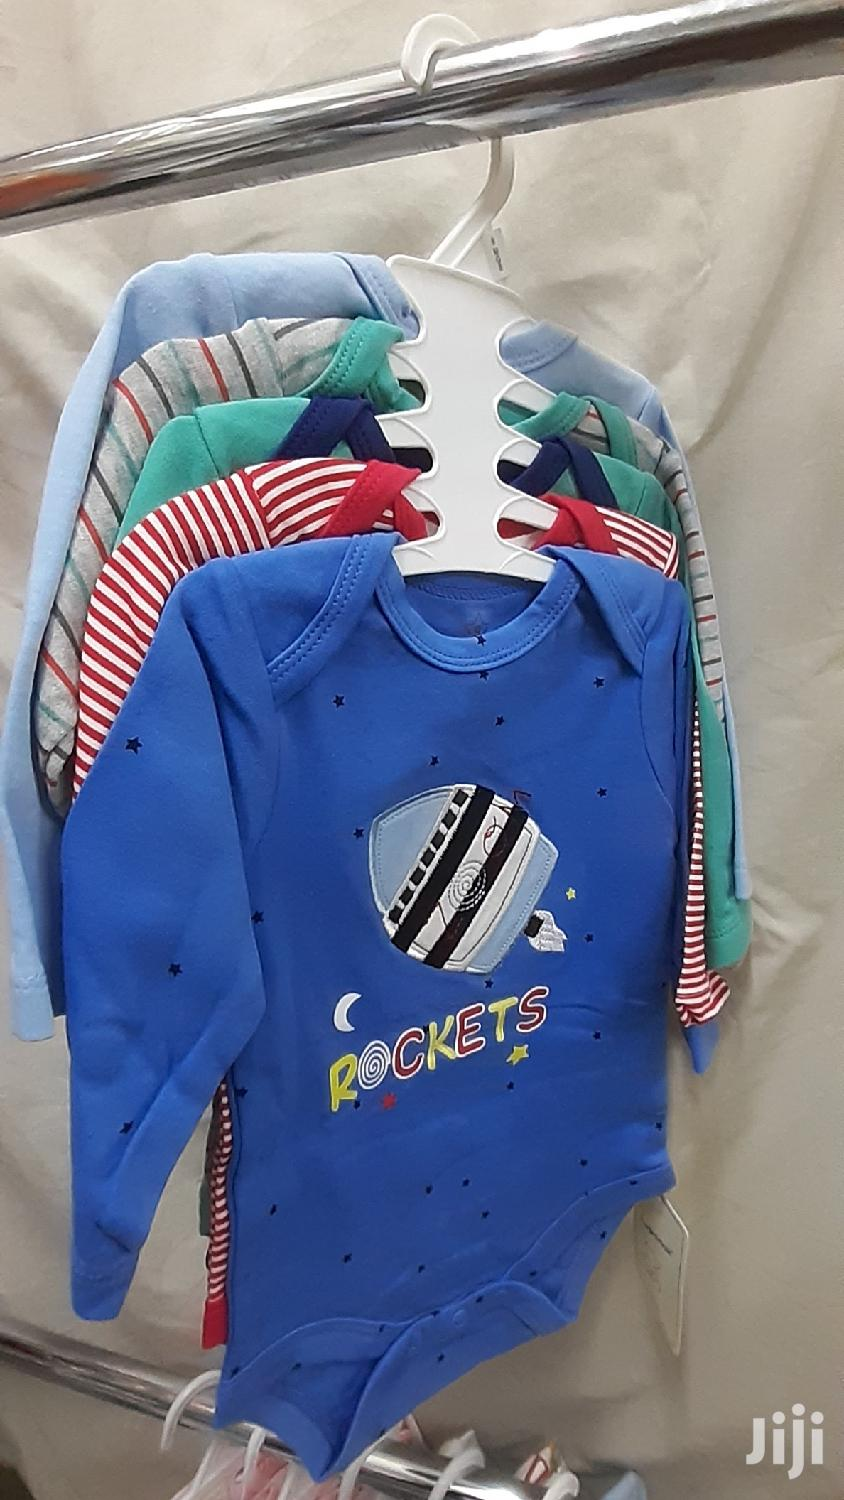 Body Suits for Baby Boy